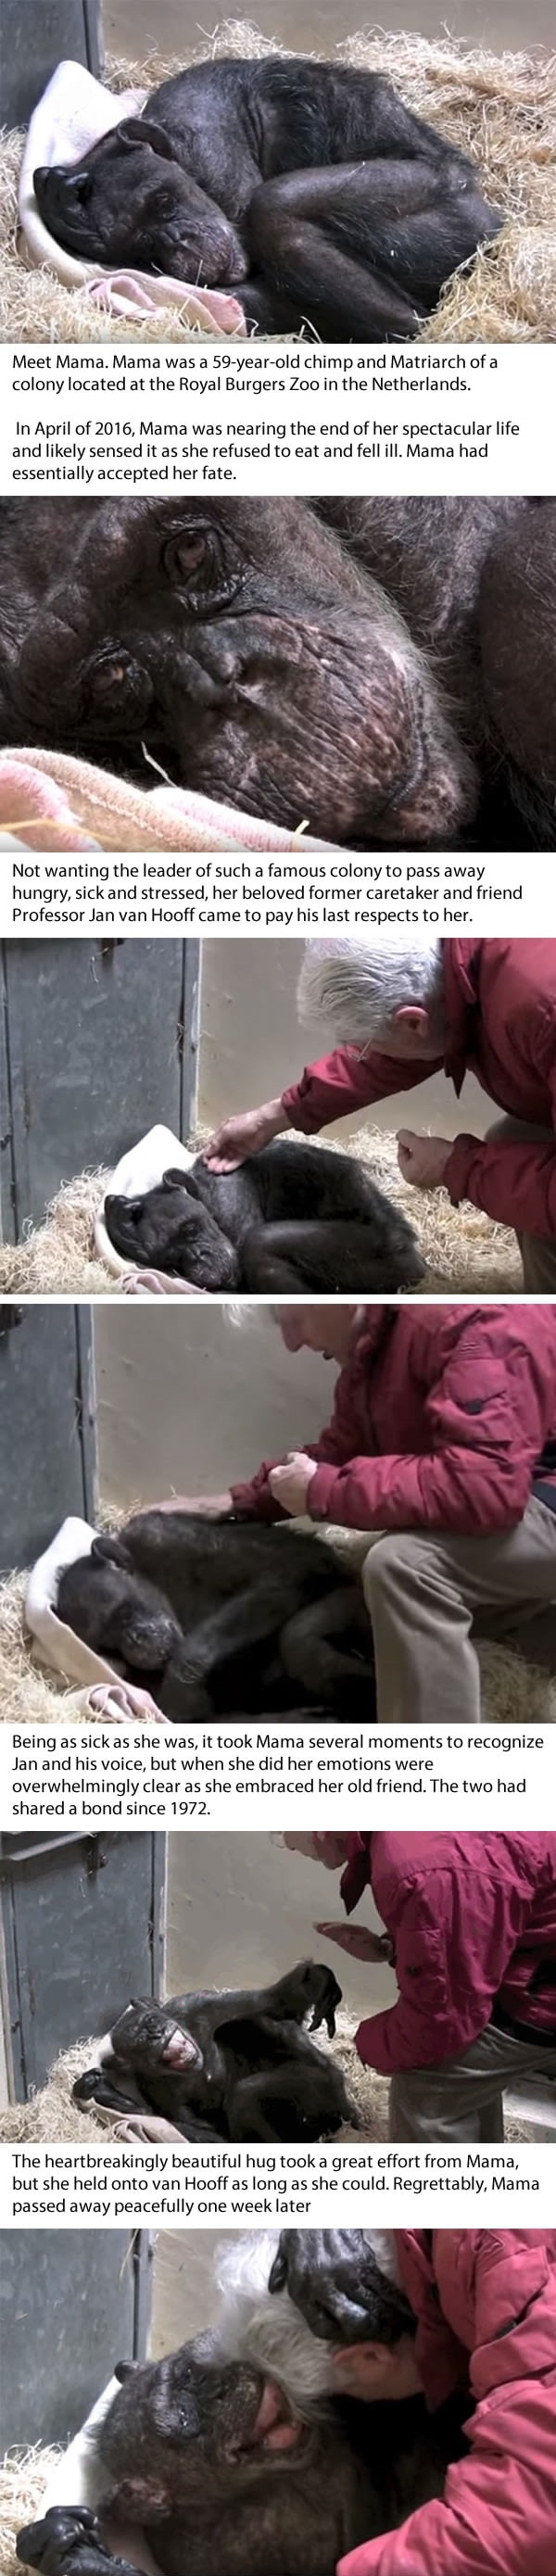 Dying 59 y/o chimp recognises her old caretaker's voice